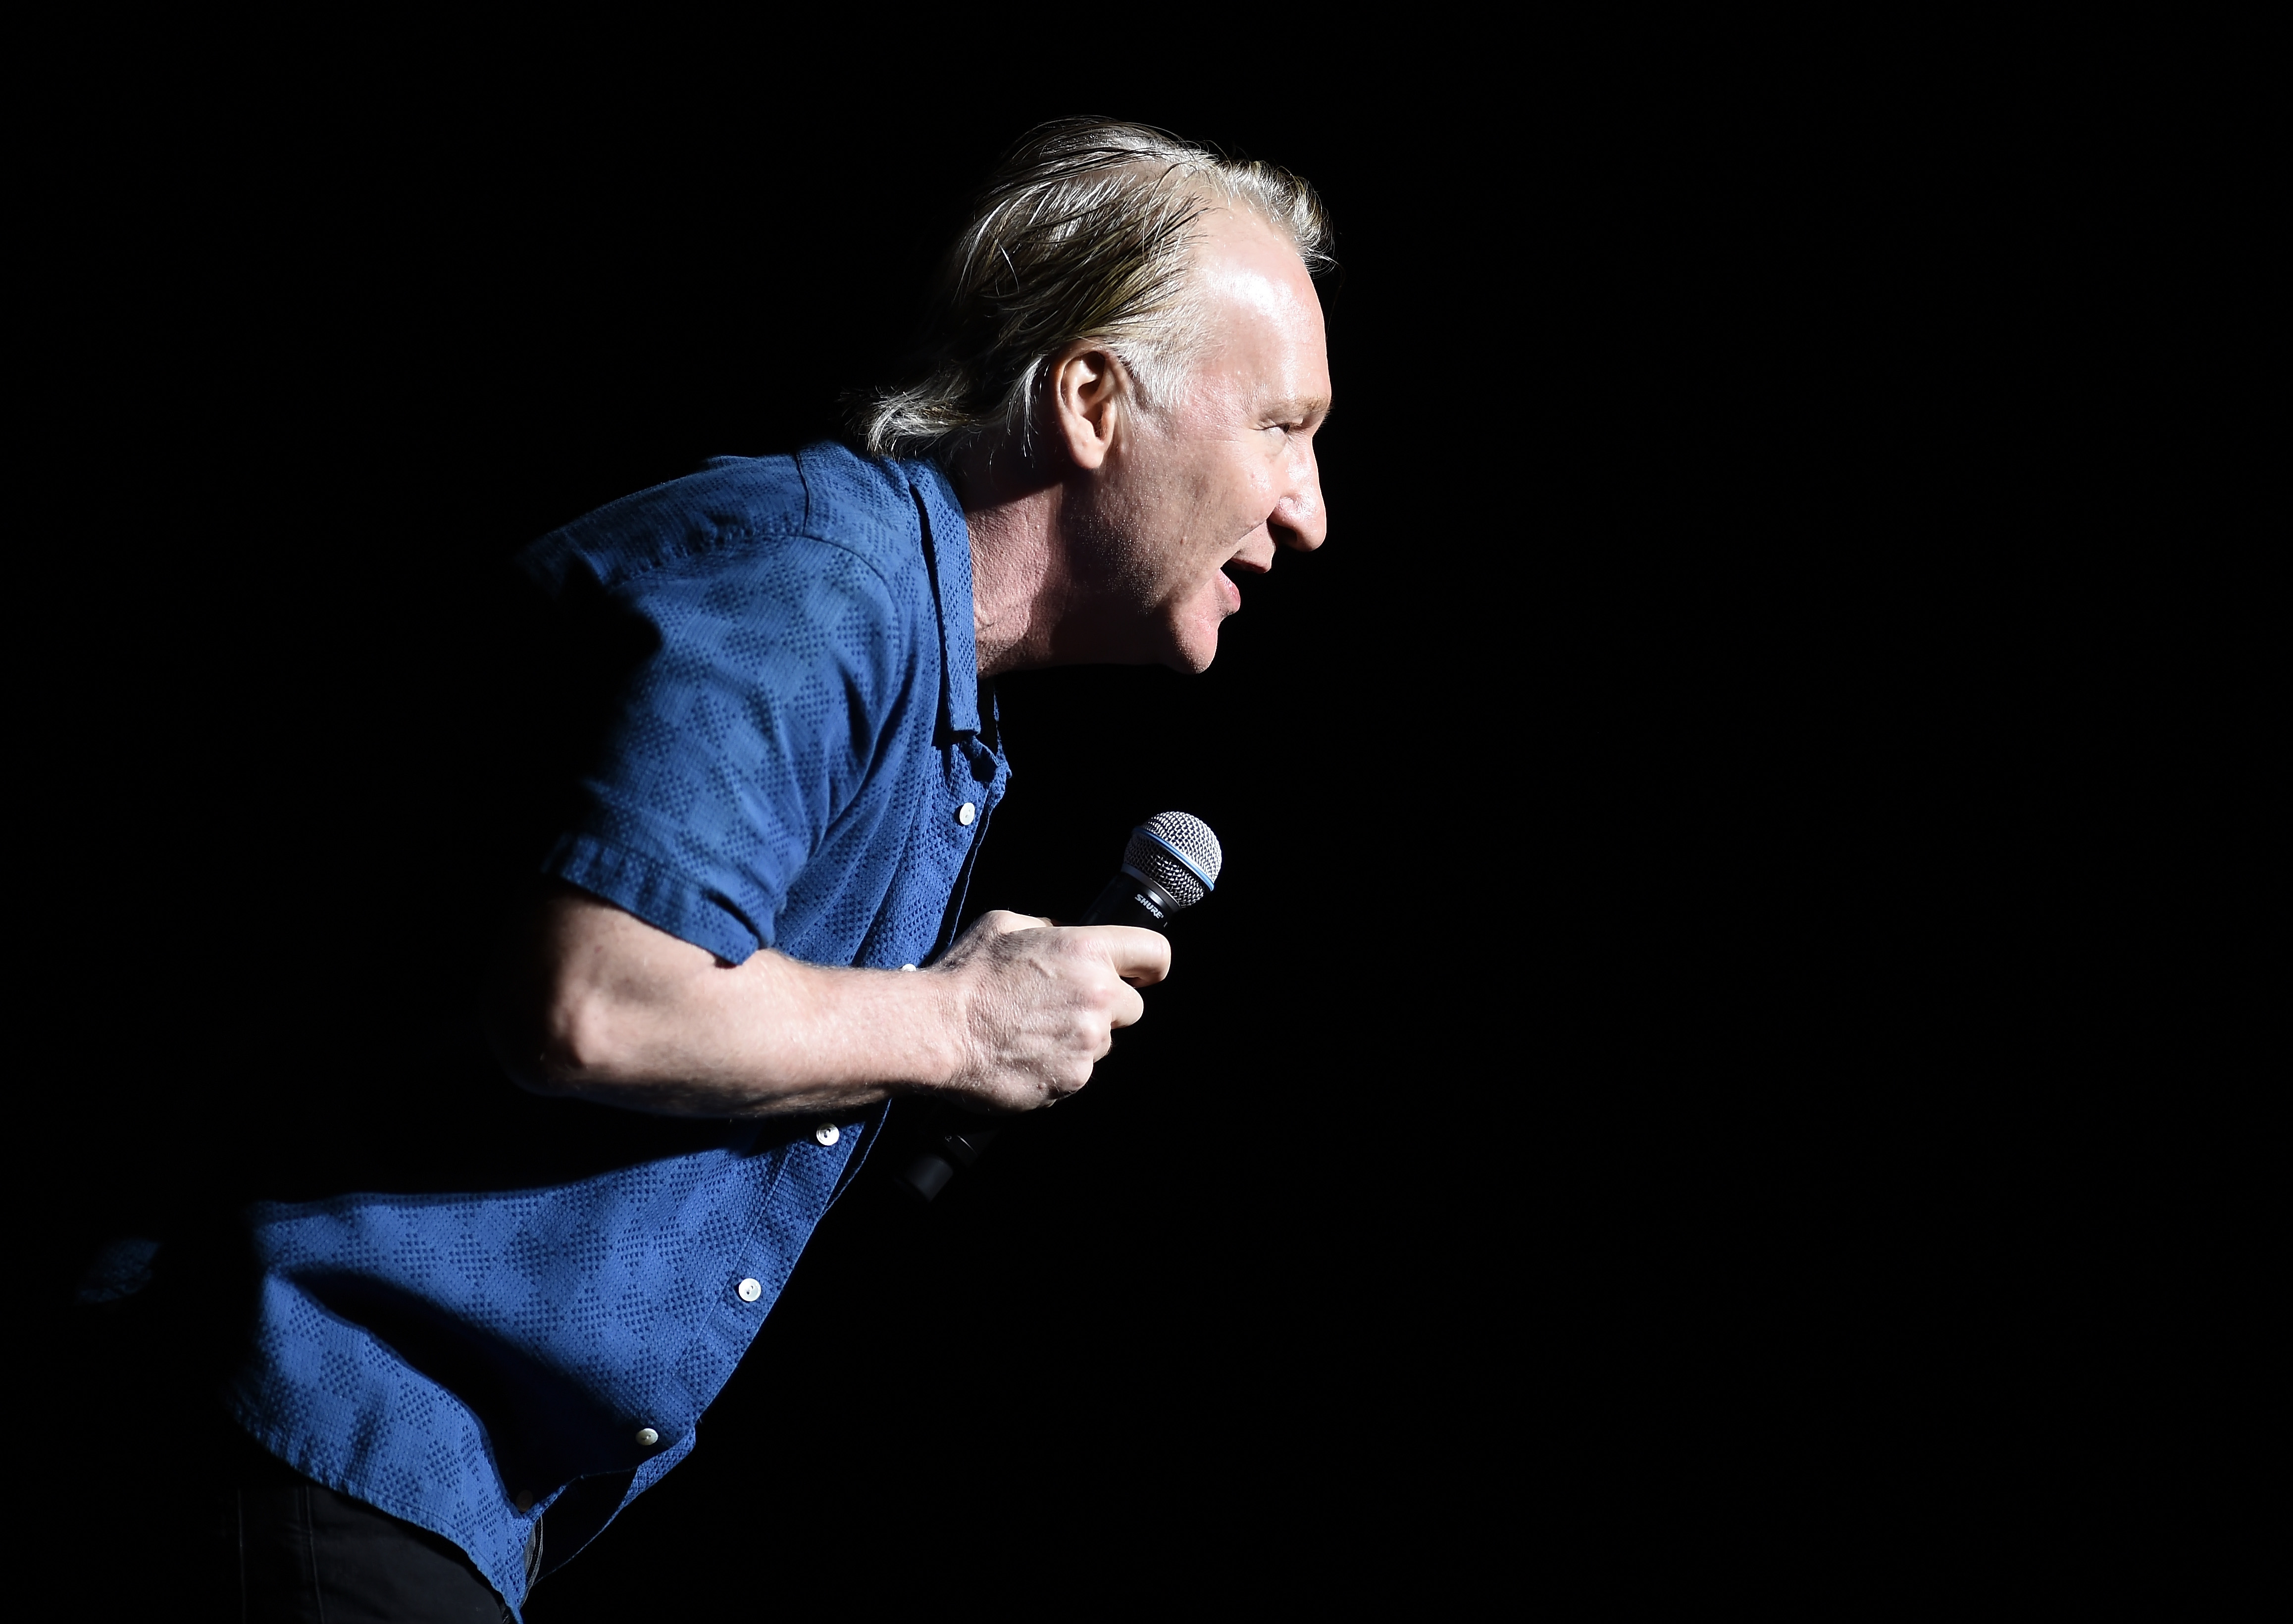 Bill Maher performs during New York Comedy Festival at The Theater at Madison Square Garden on Nove. 5, 2016 in New York City.